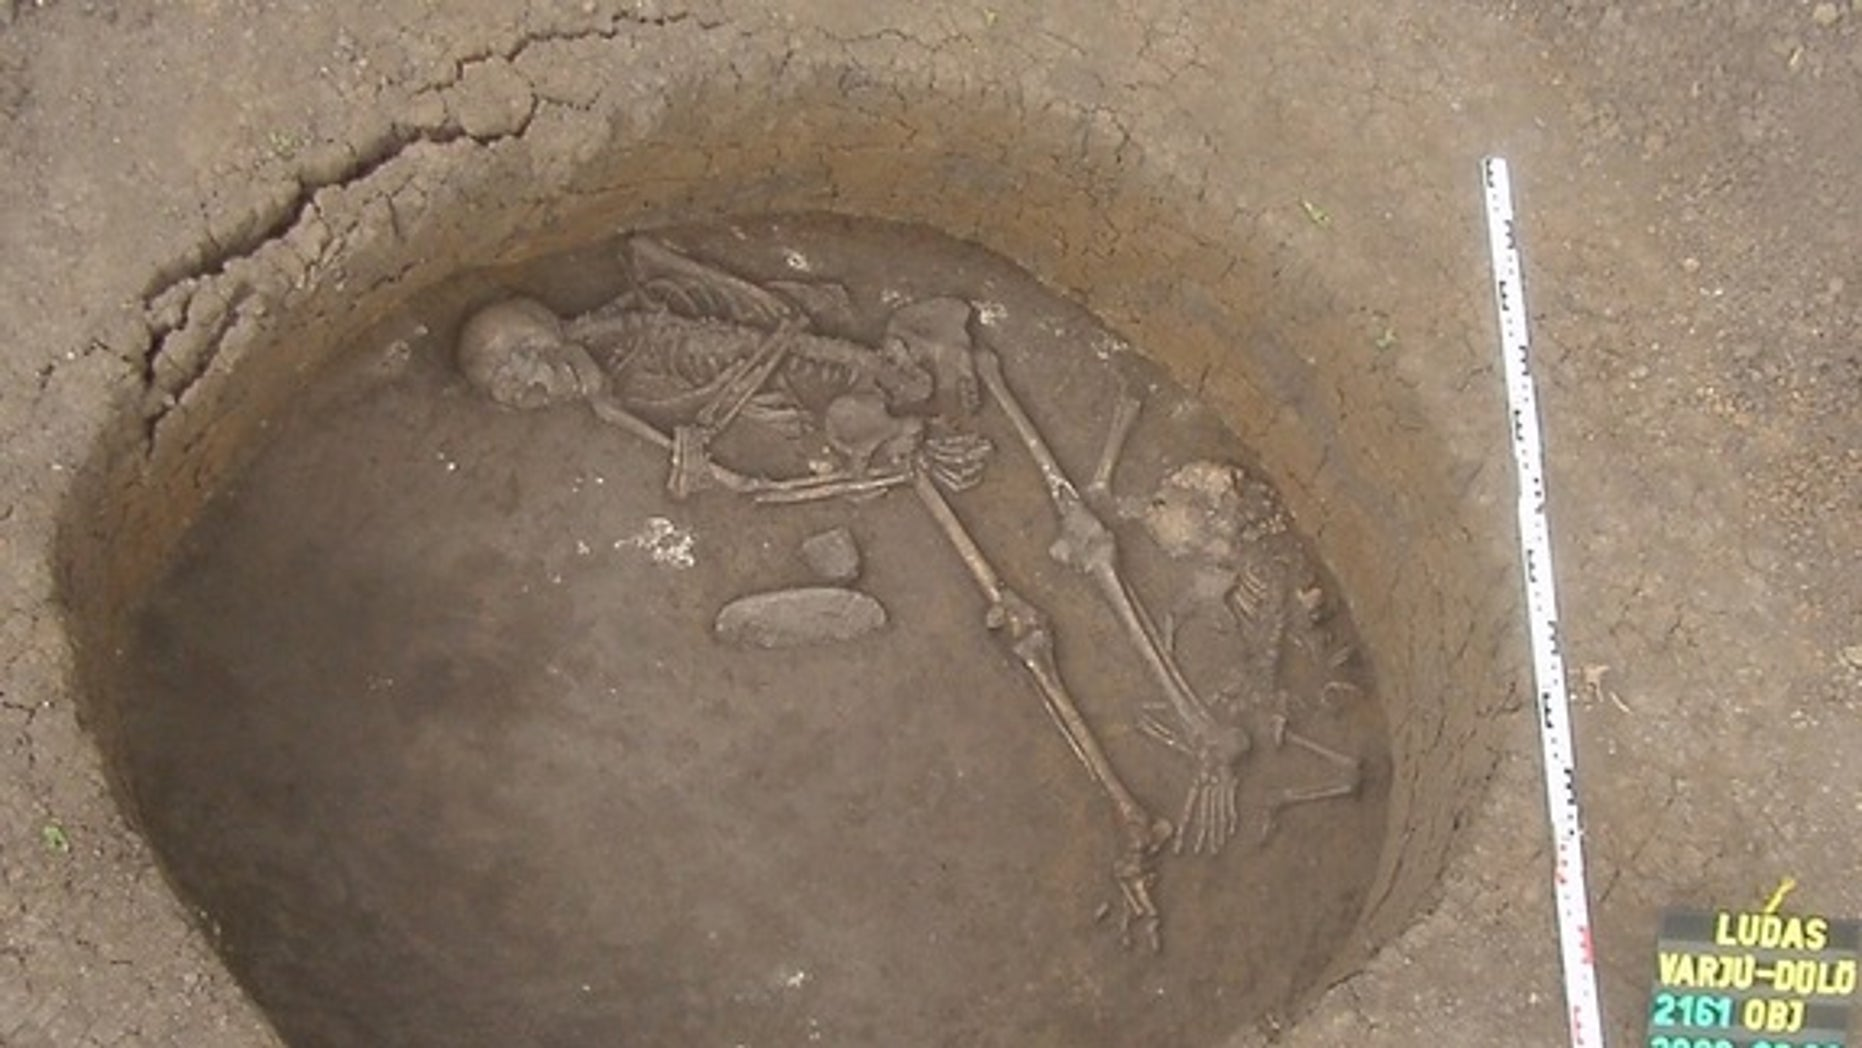 A Late Bronze Age burial from the site of Ludas-Varjú-dulo, Hungary dated to about 1200 B.C. This individual marks the onset of lactose tolerance in the region.